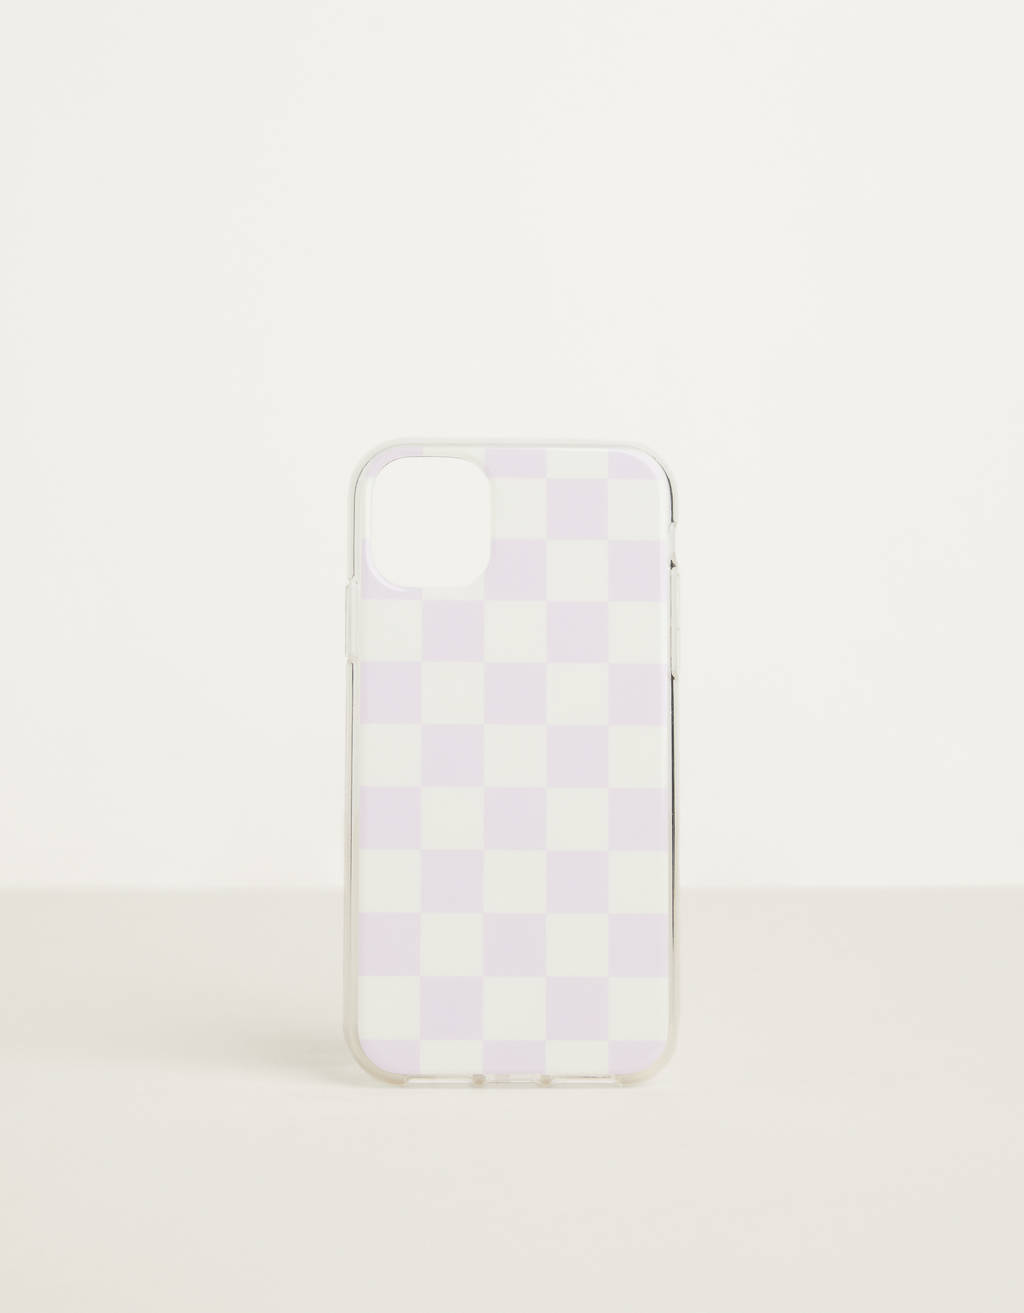 Checked iPhone 11 case